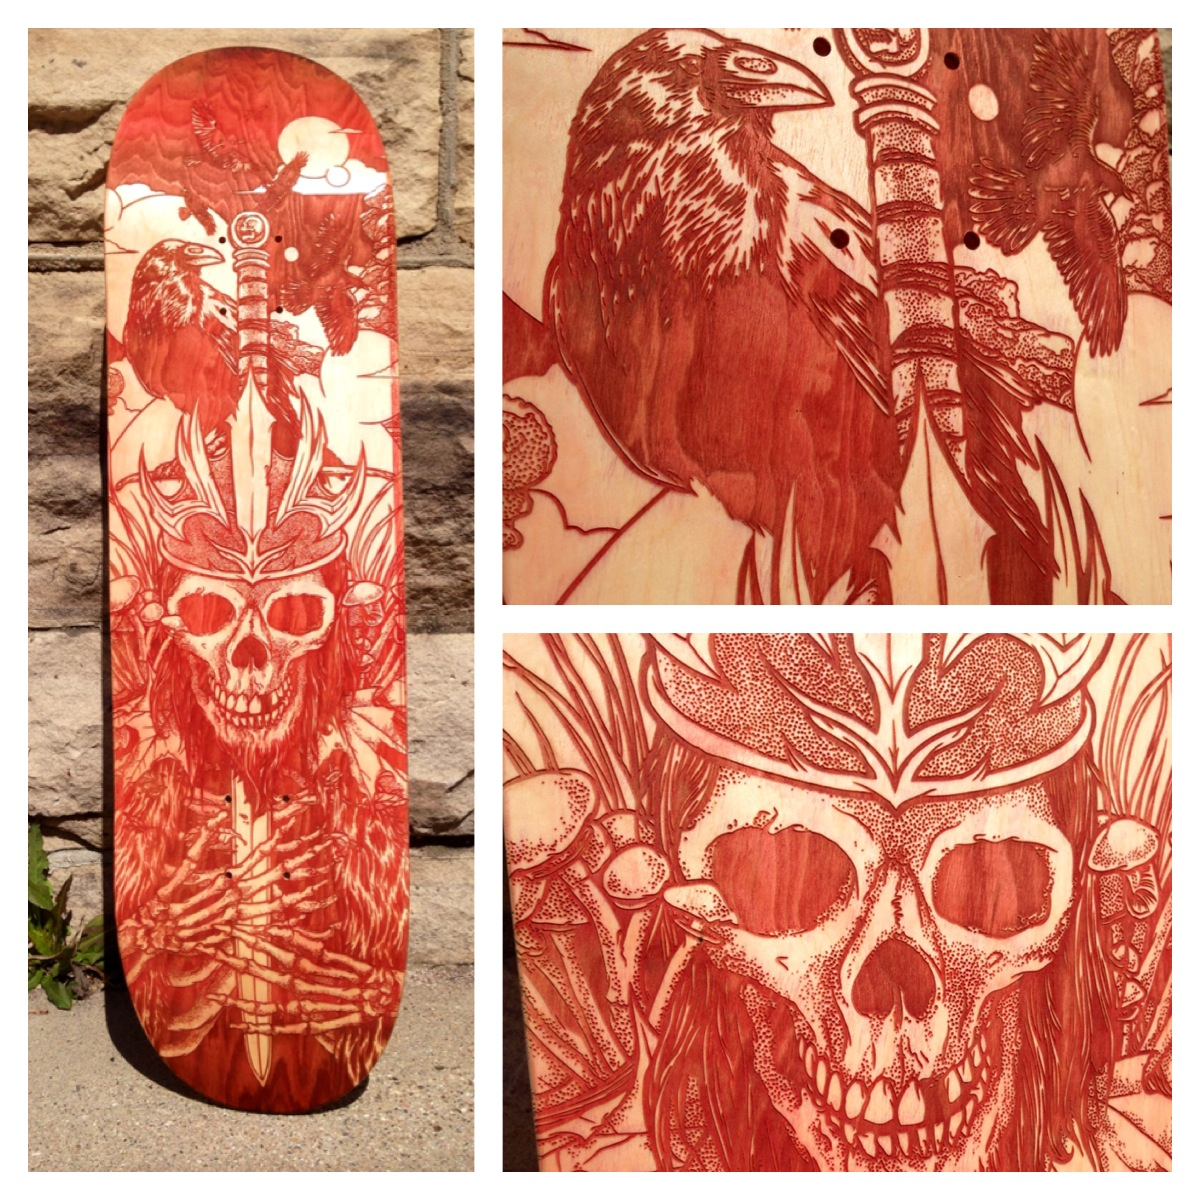 Heavy Lies the Crown - Laser Etched Skate Deck by scumbugg